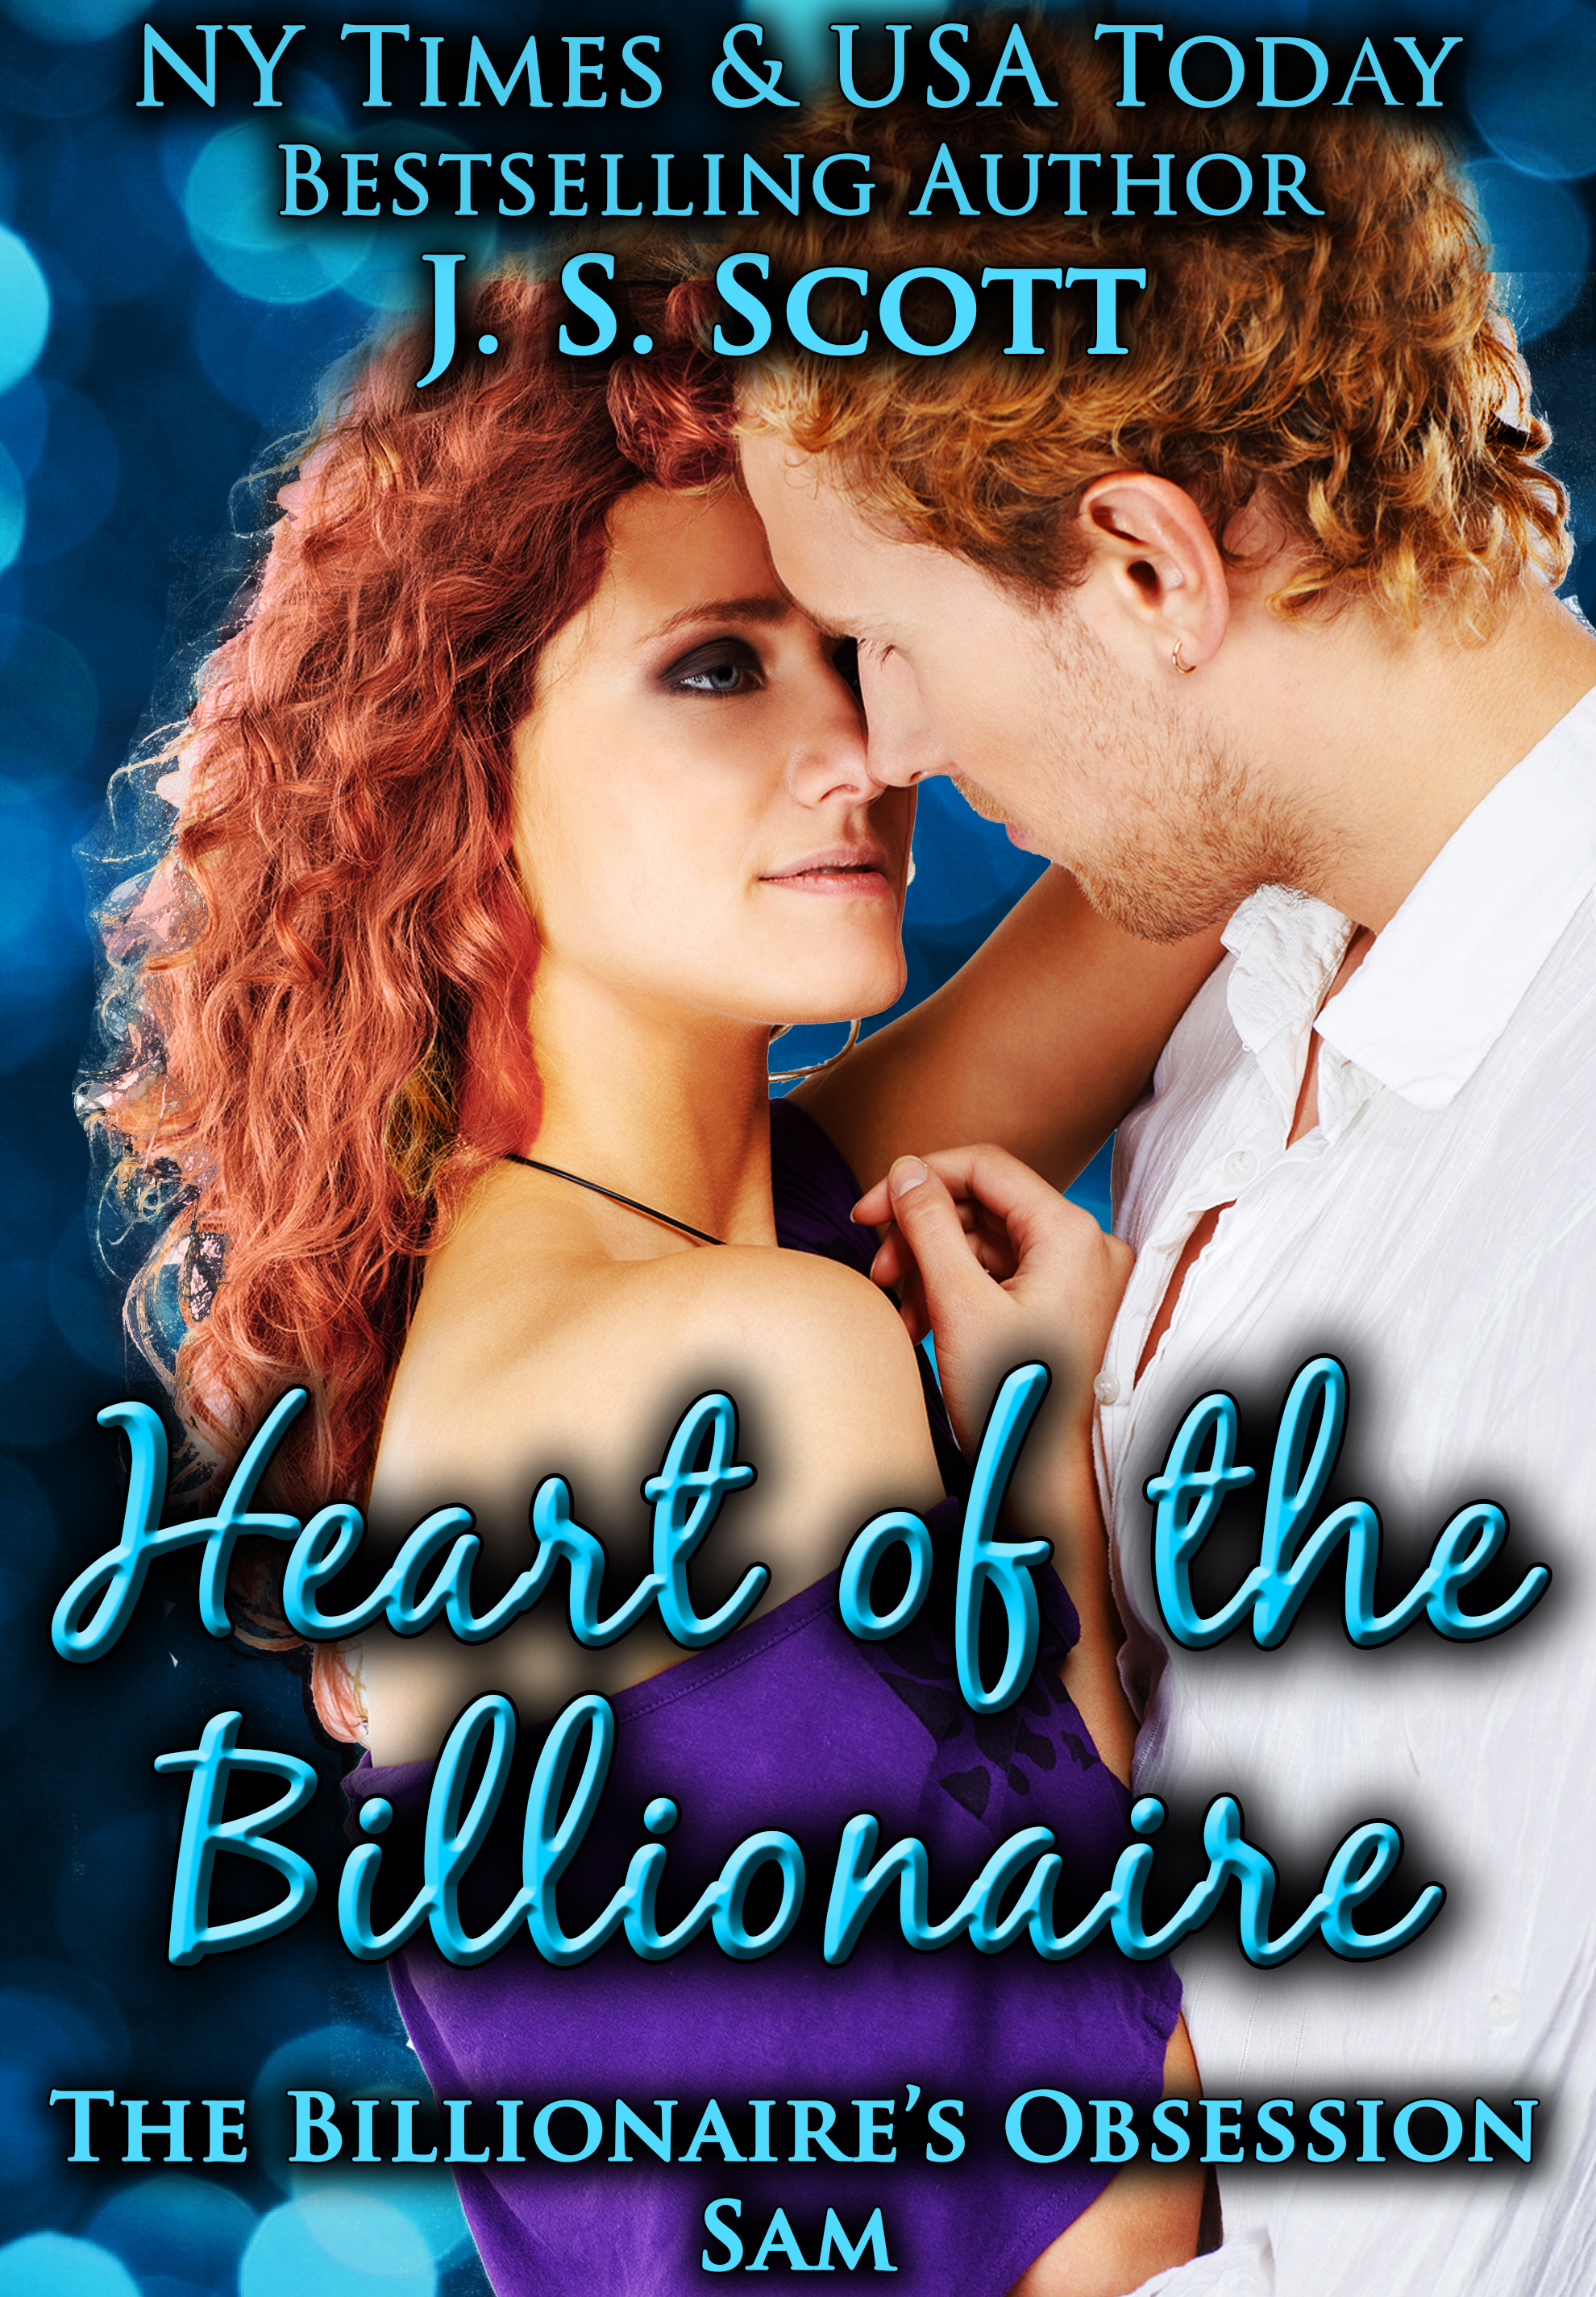 J. S. Scott - Heart Of The Billionaire (The Billionaire's Obsession ~ Sam)